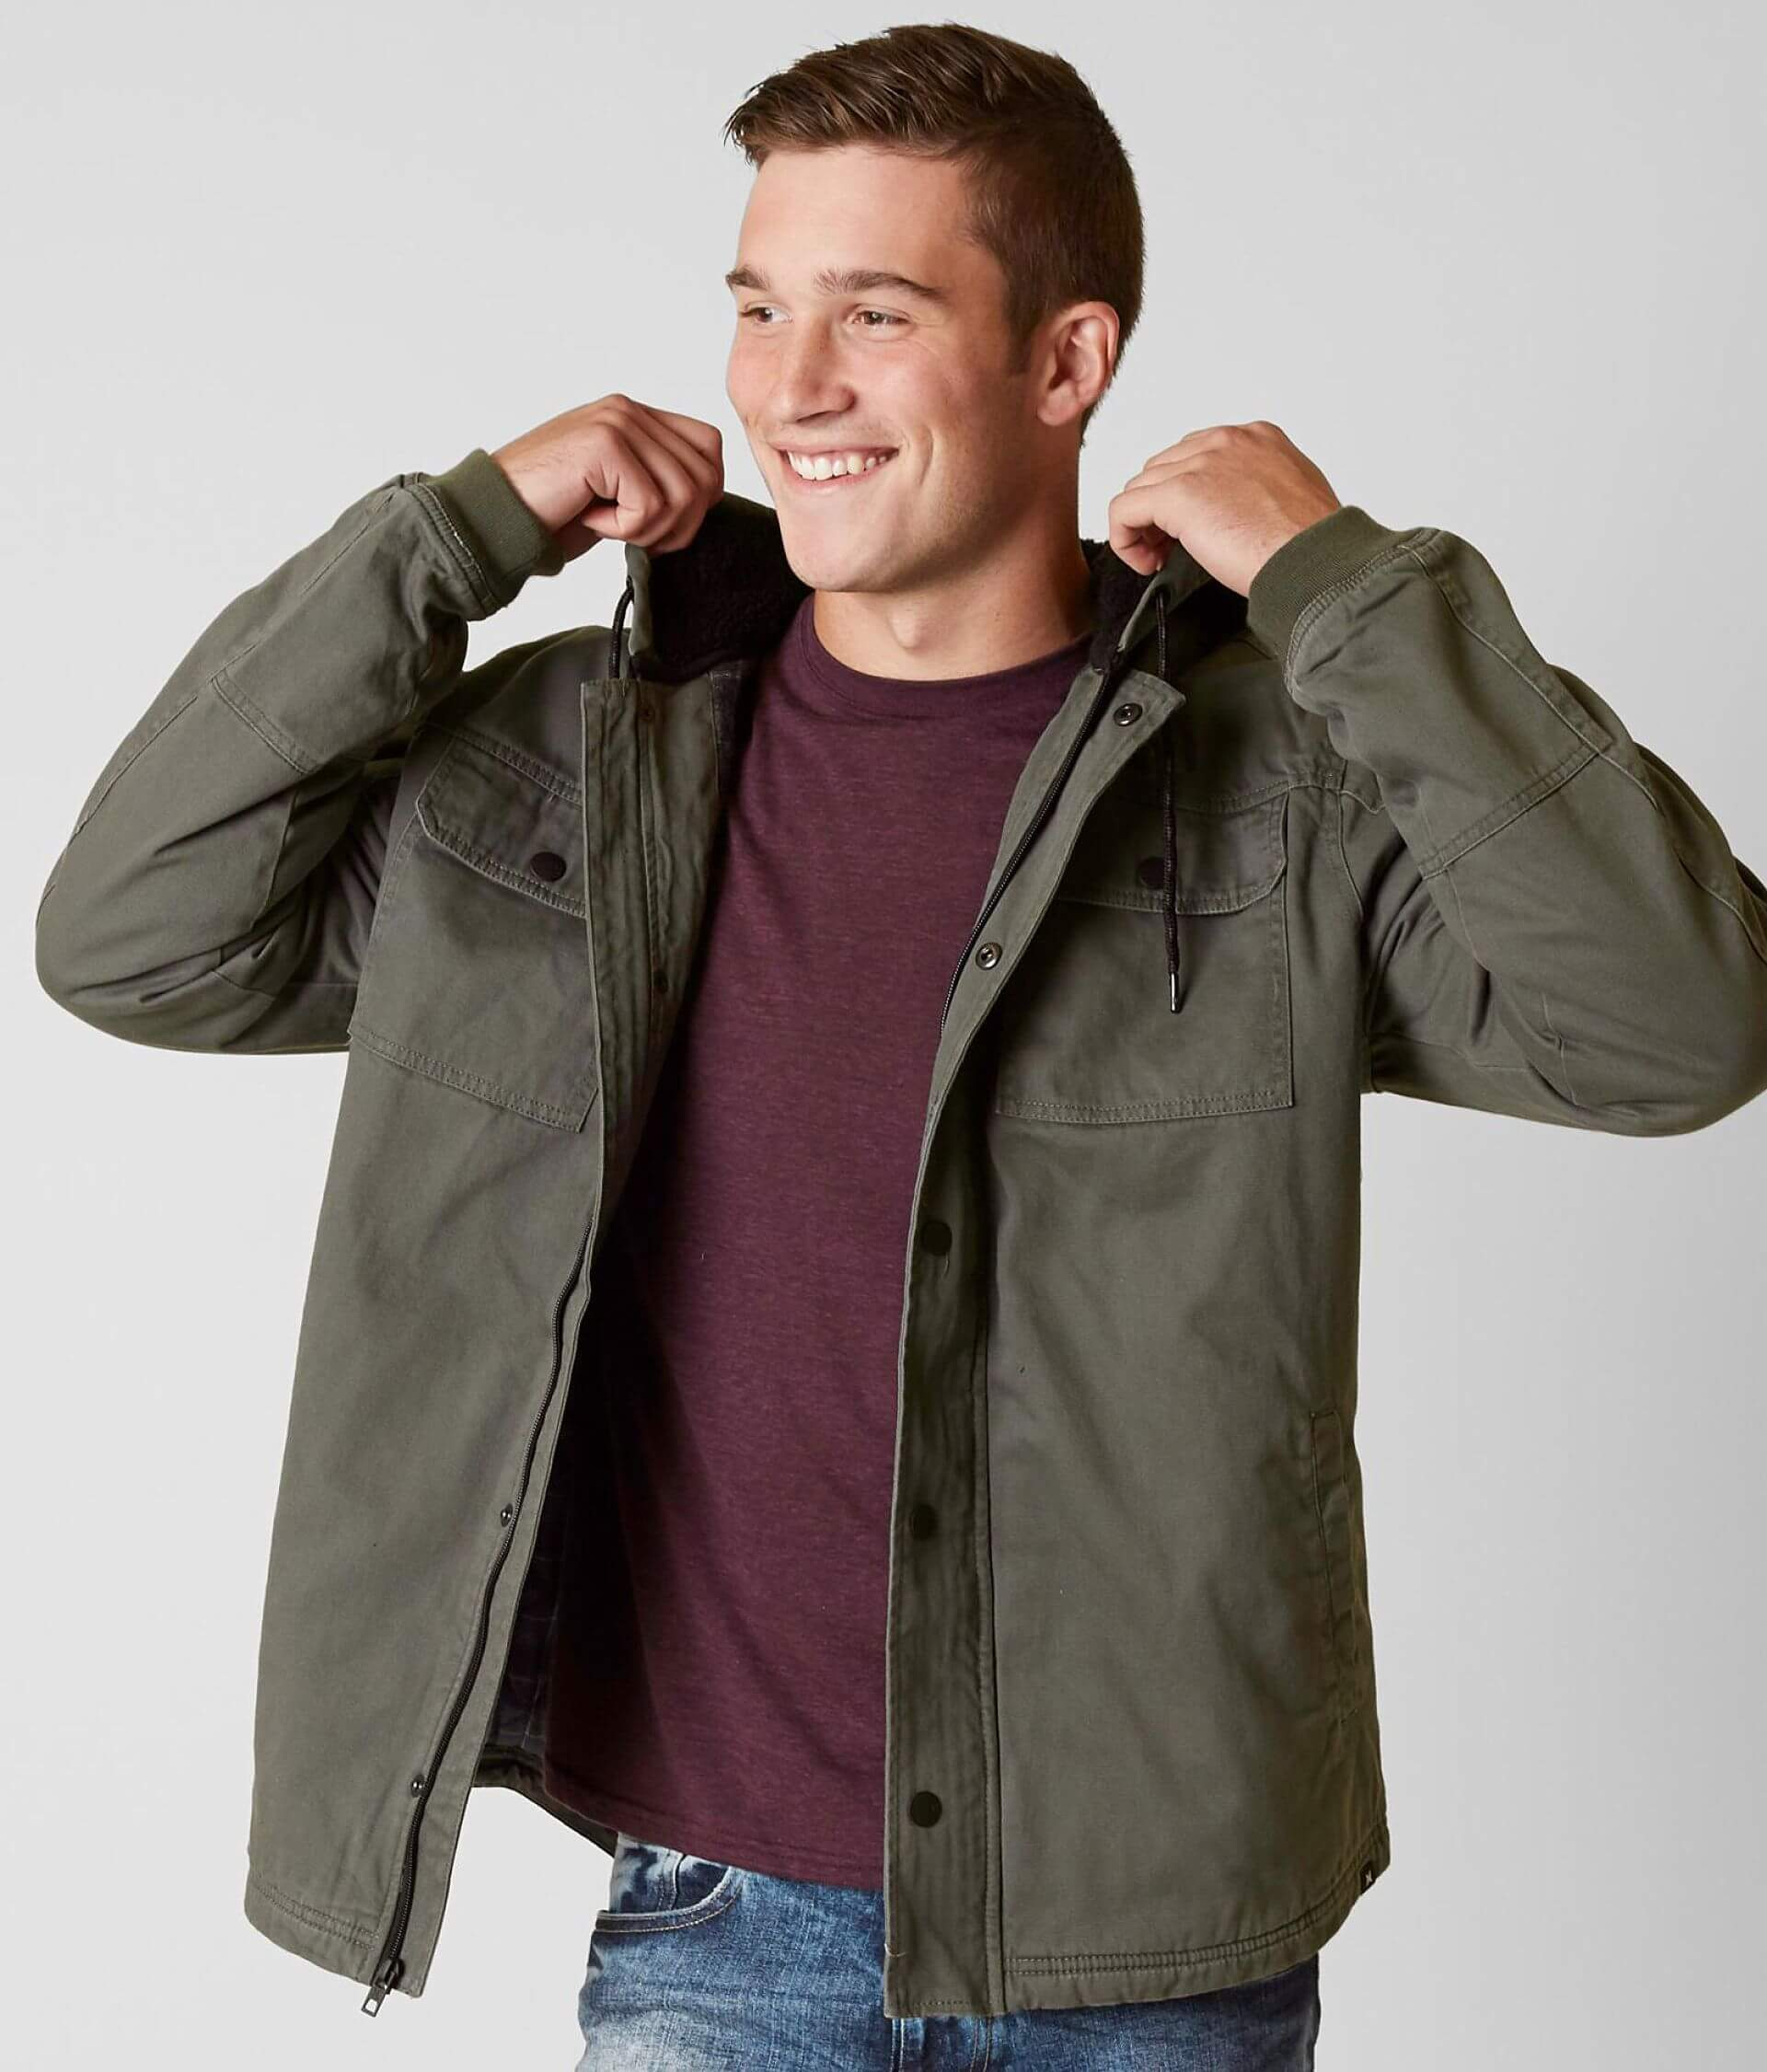 ad5a0548d77 Hurley Outdoor Jacket - Men s Coats Jackets in River Rock